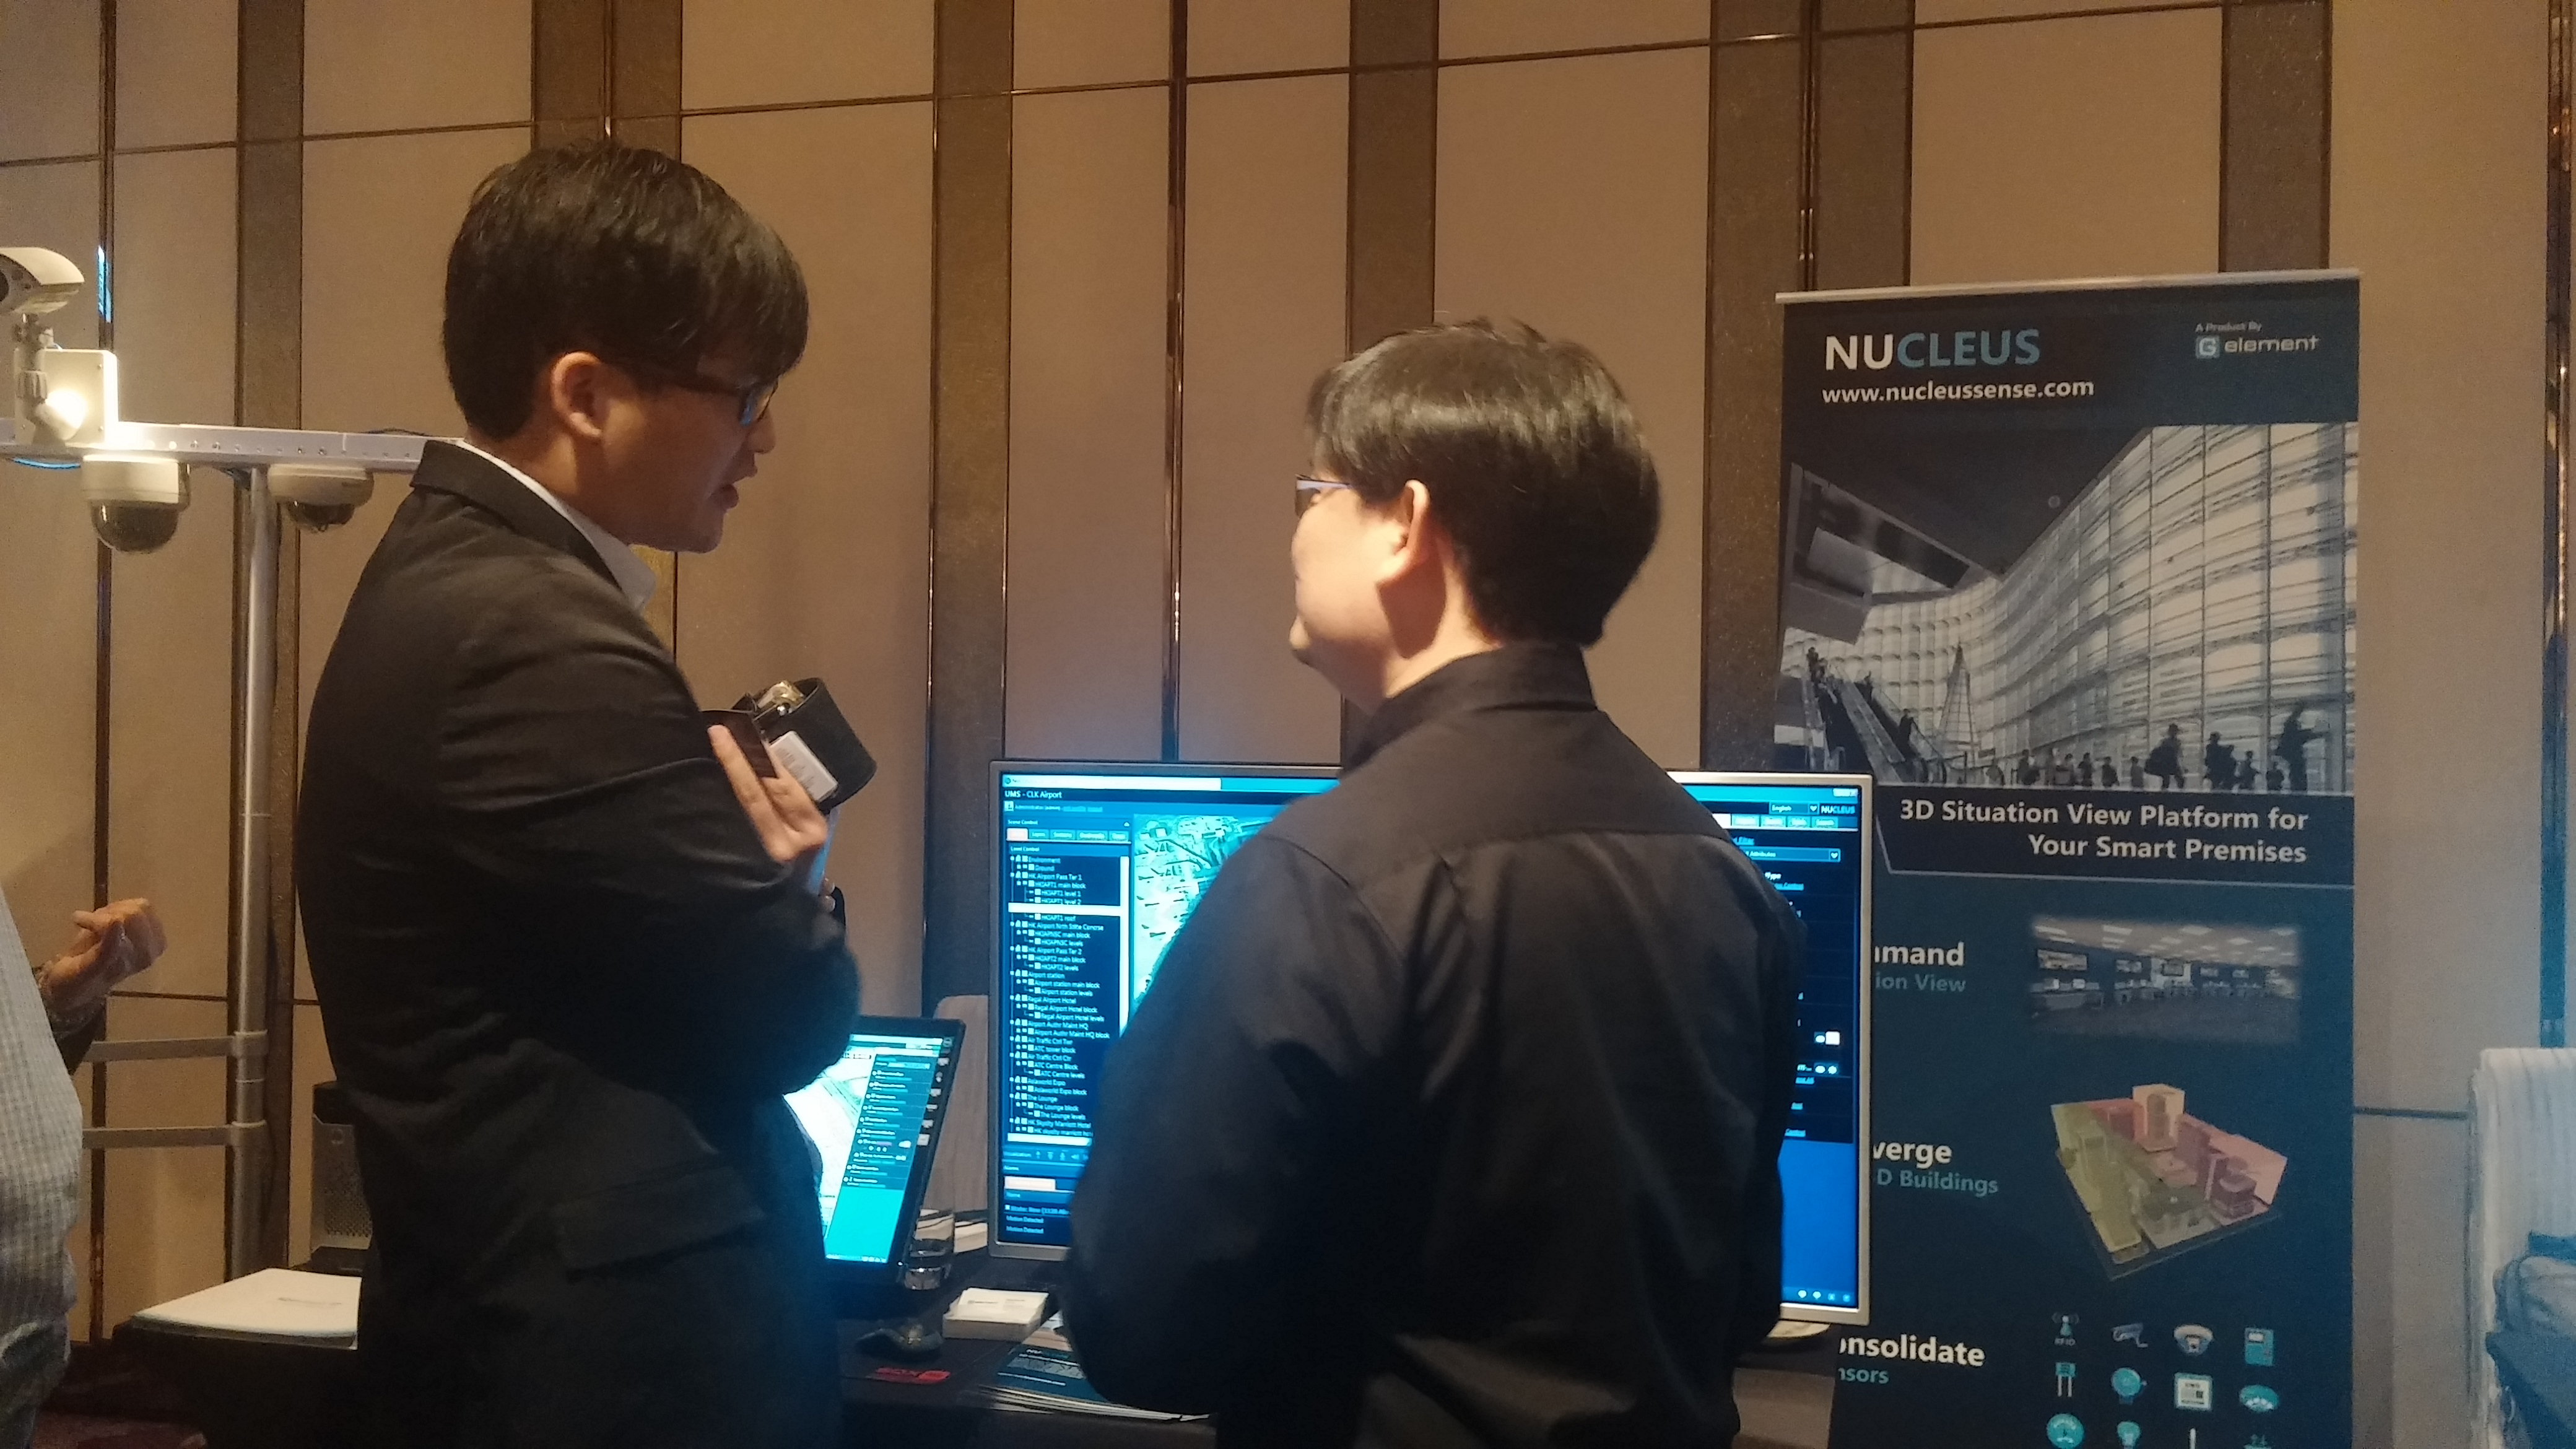 Nucleus trading system